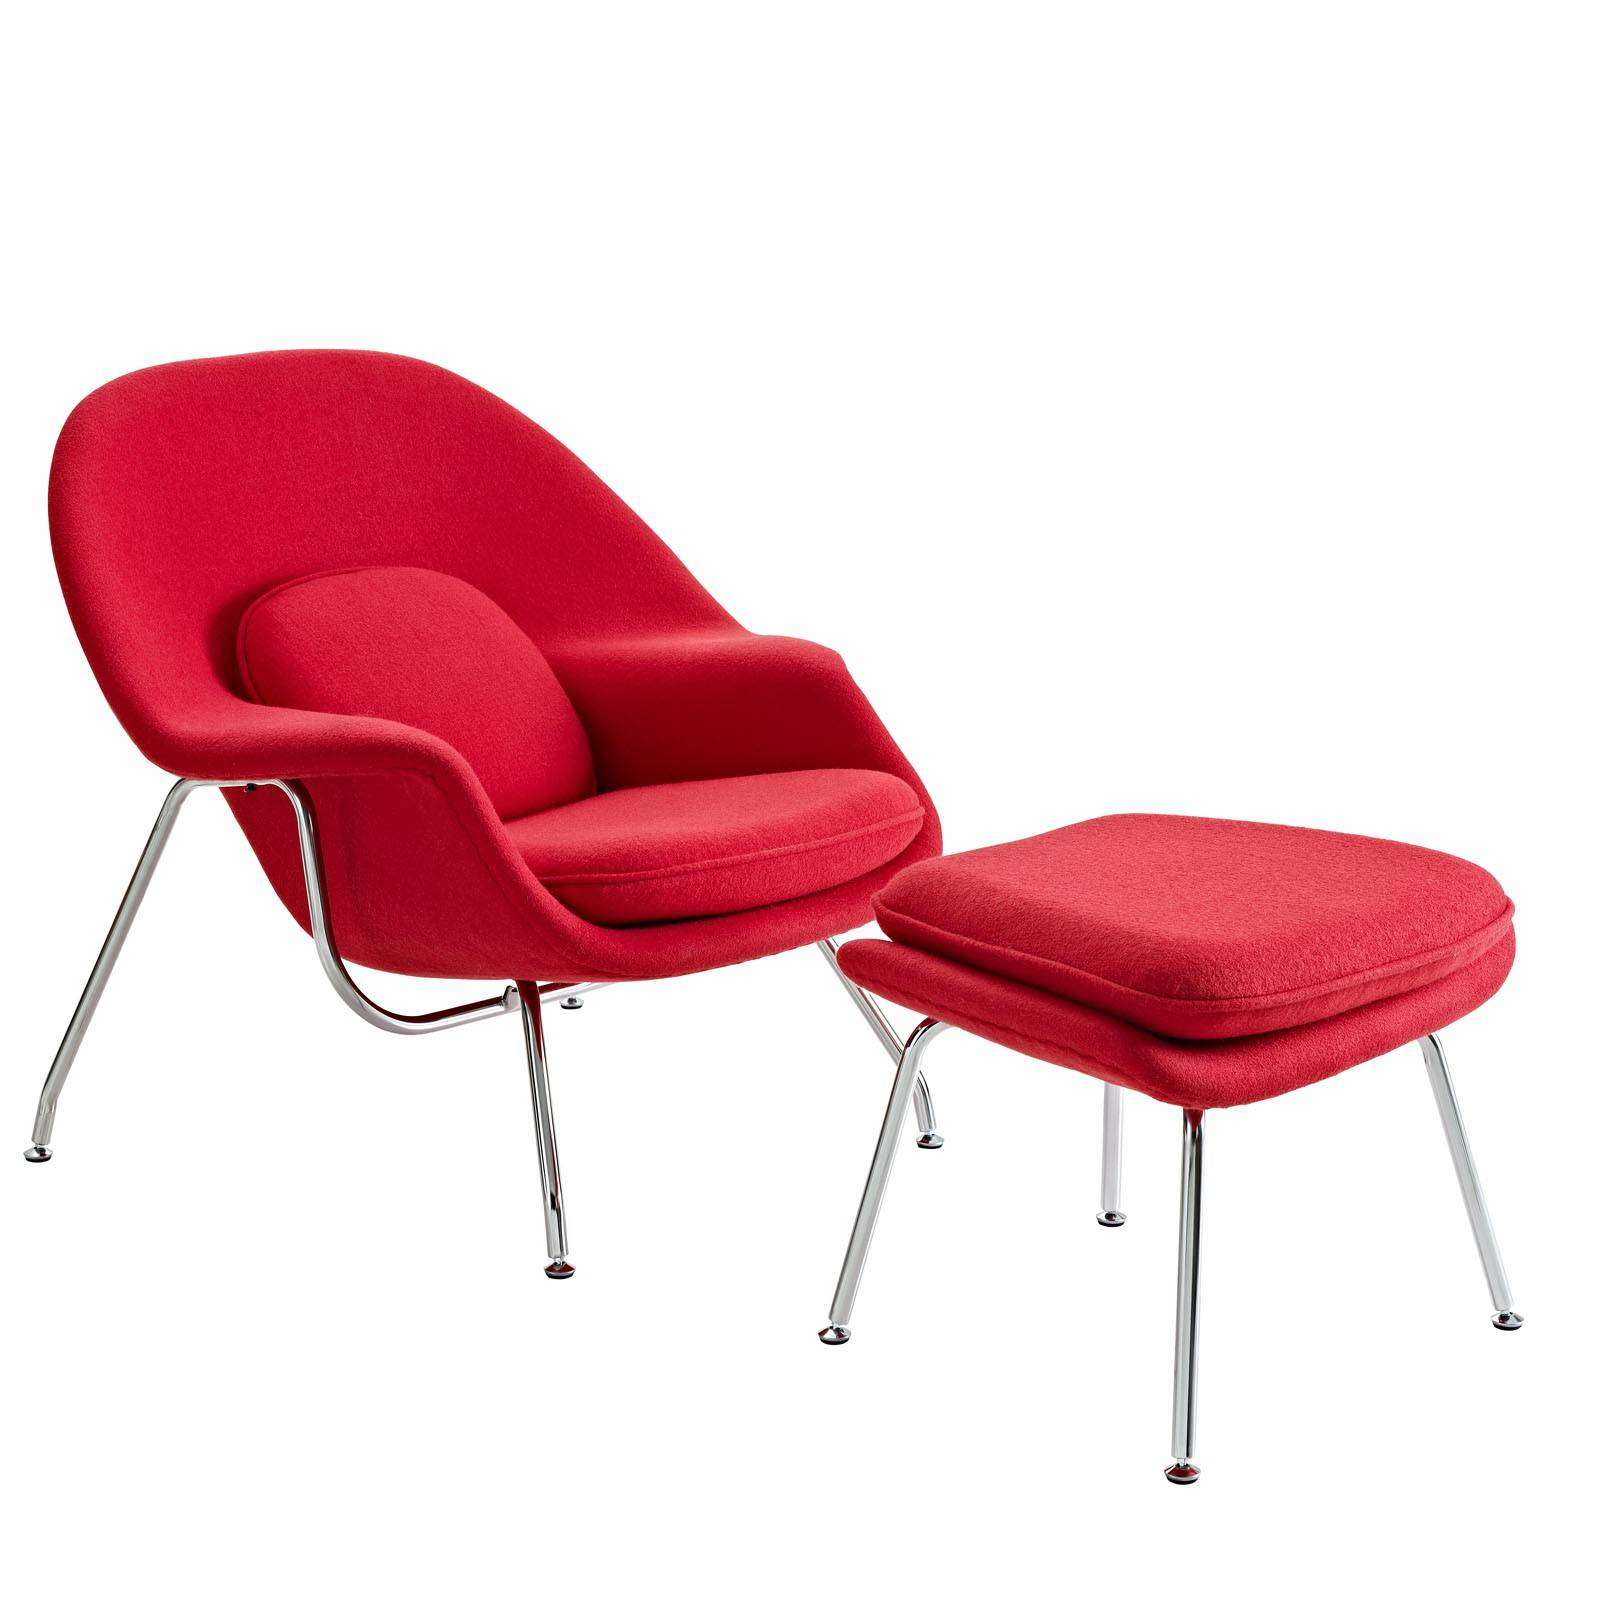 Eero Saarinen Womb Lounge Chair & Ottoman